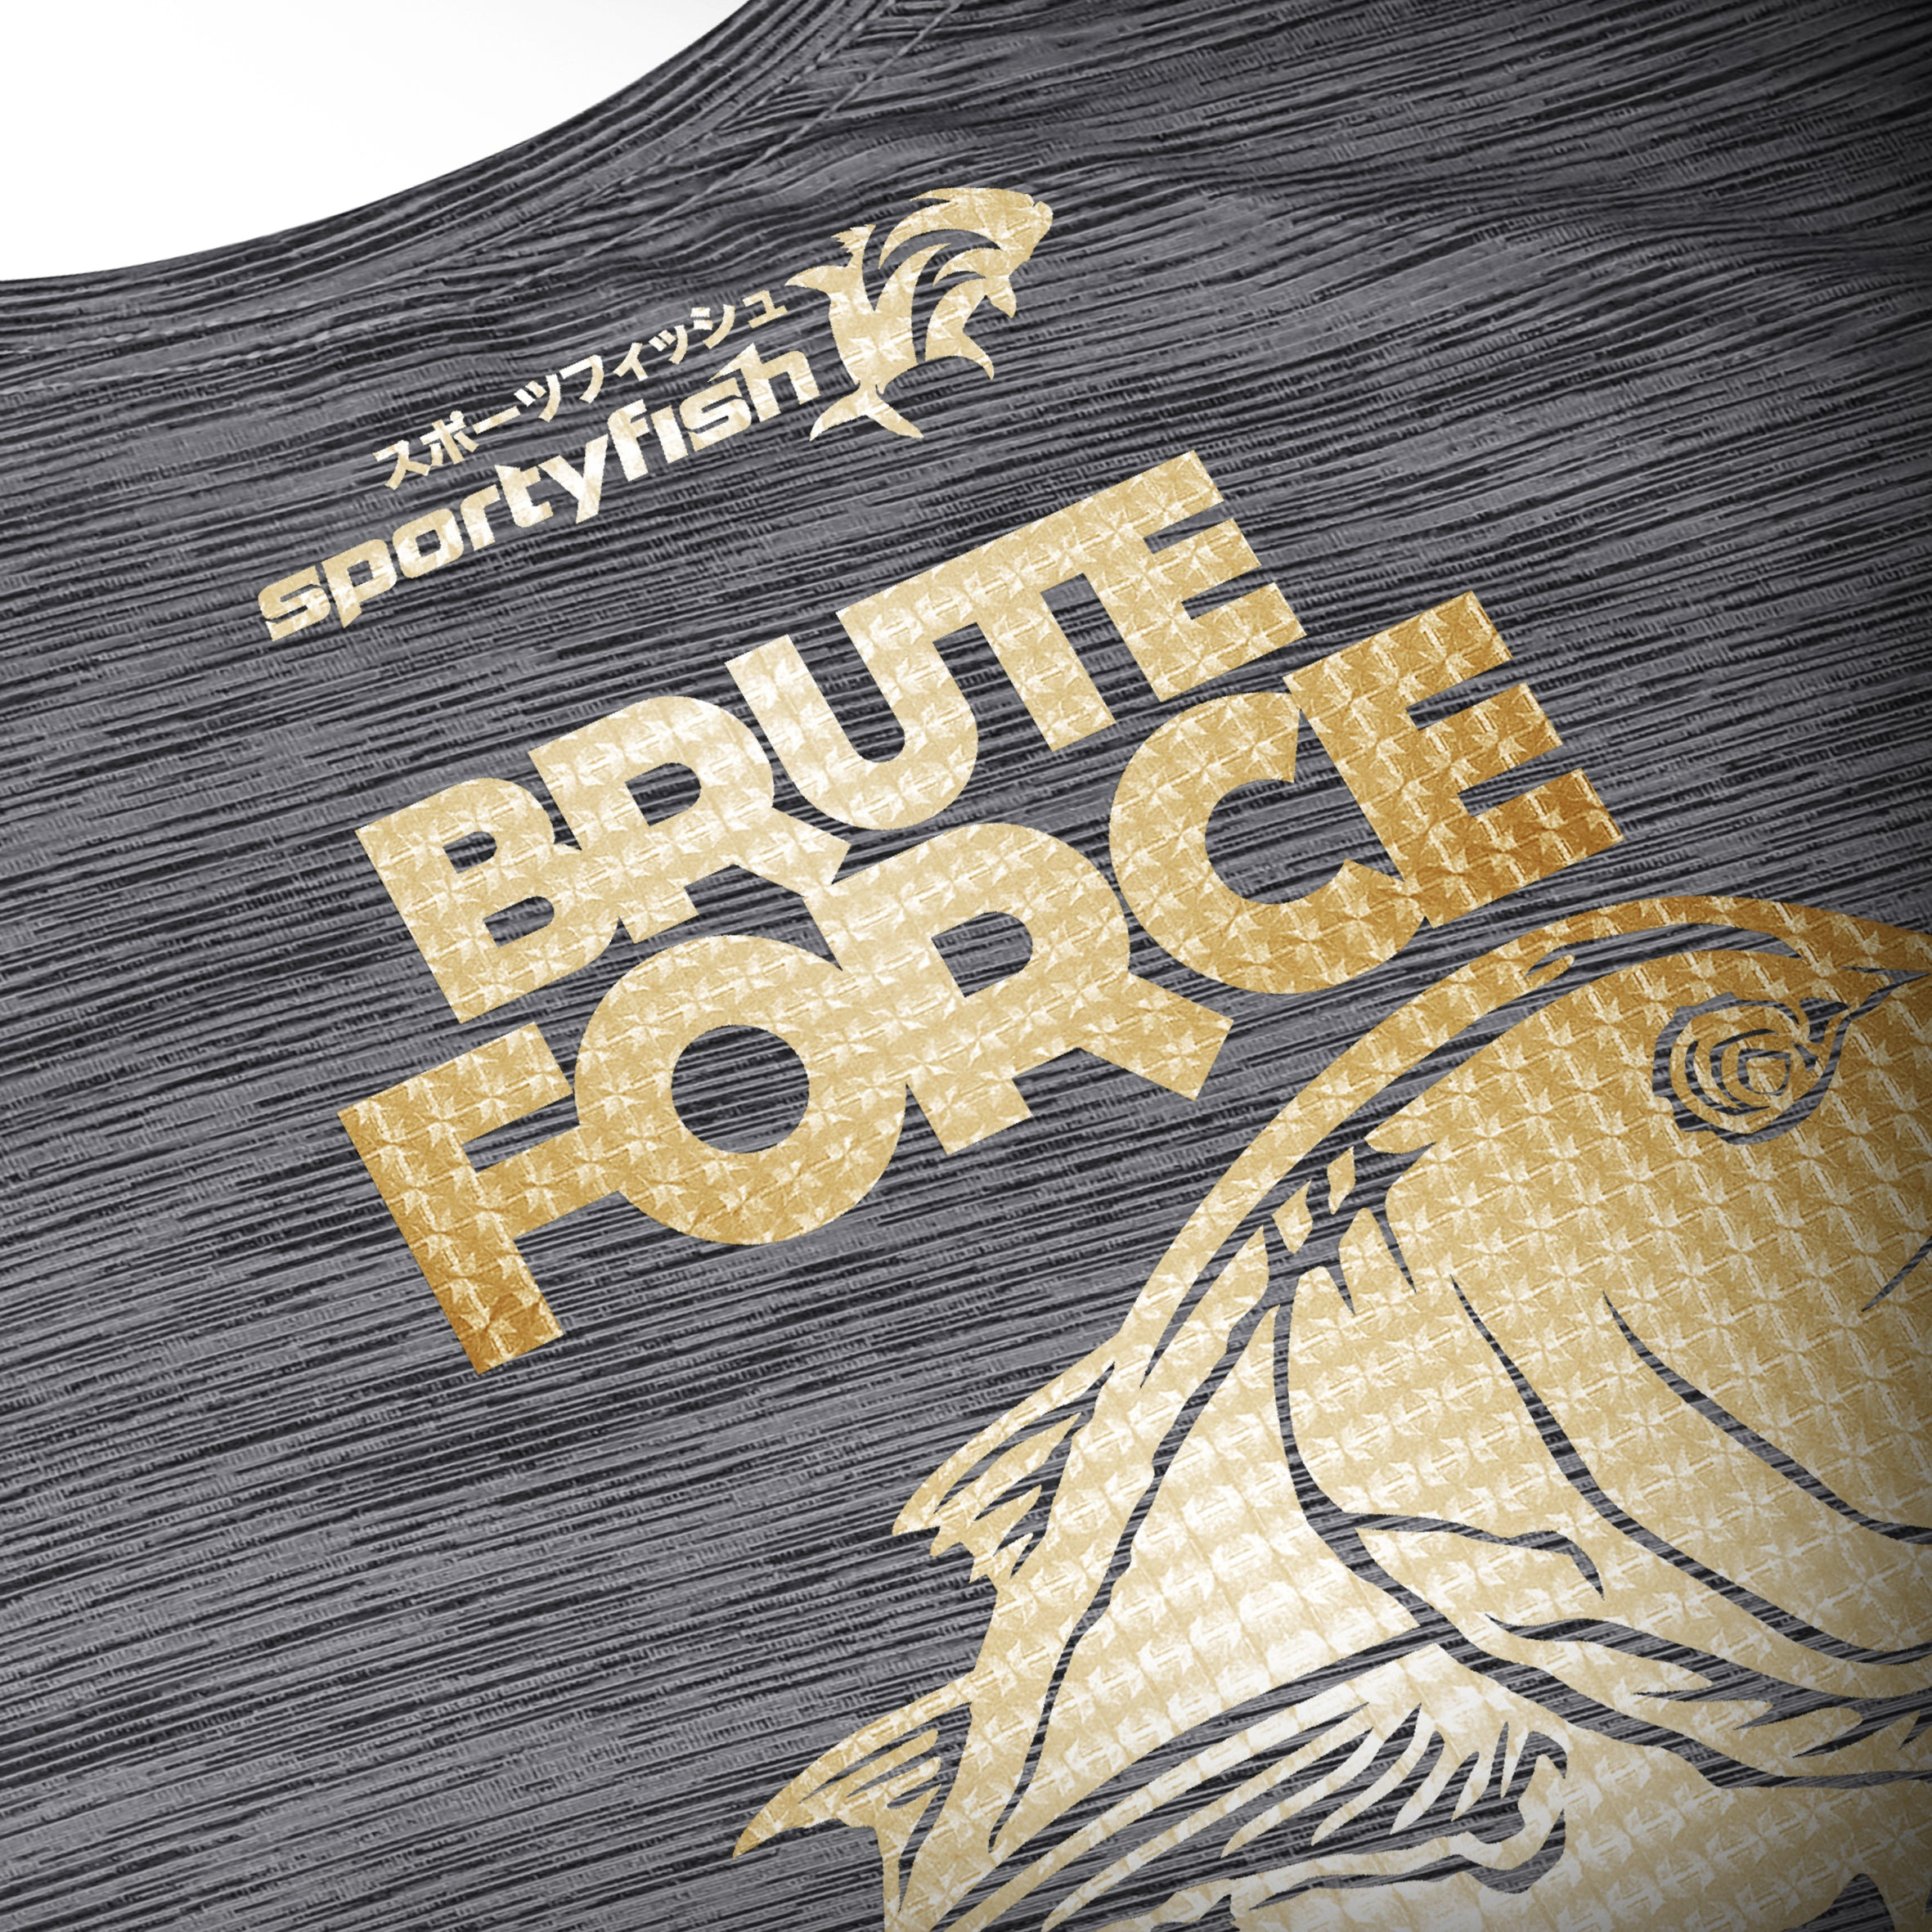 The Giant Trevally - Brute Force(Gold)